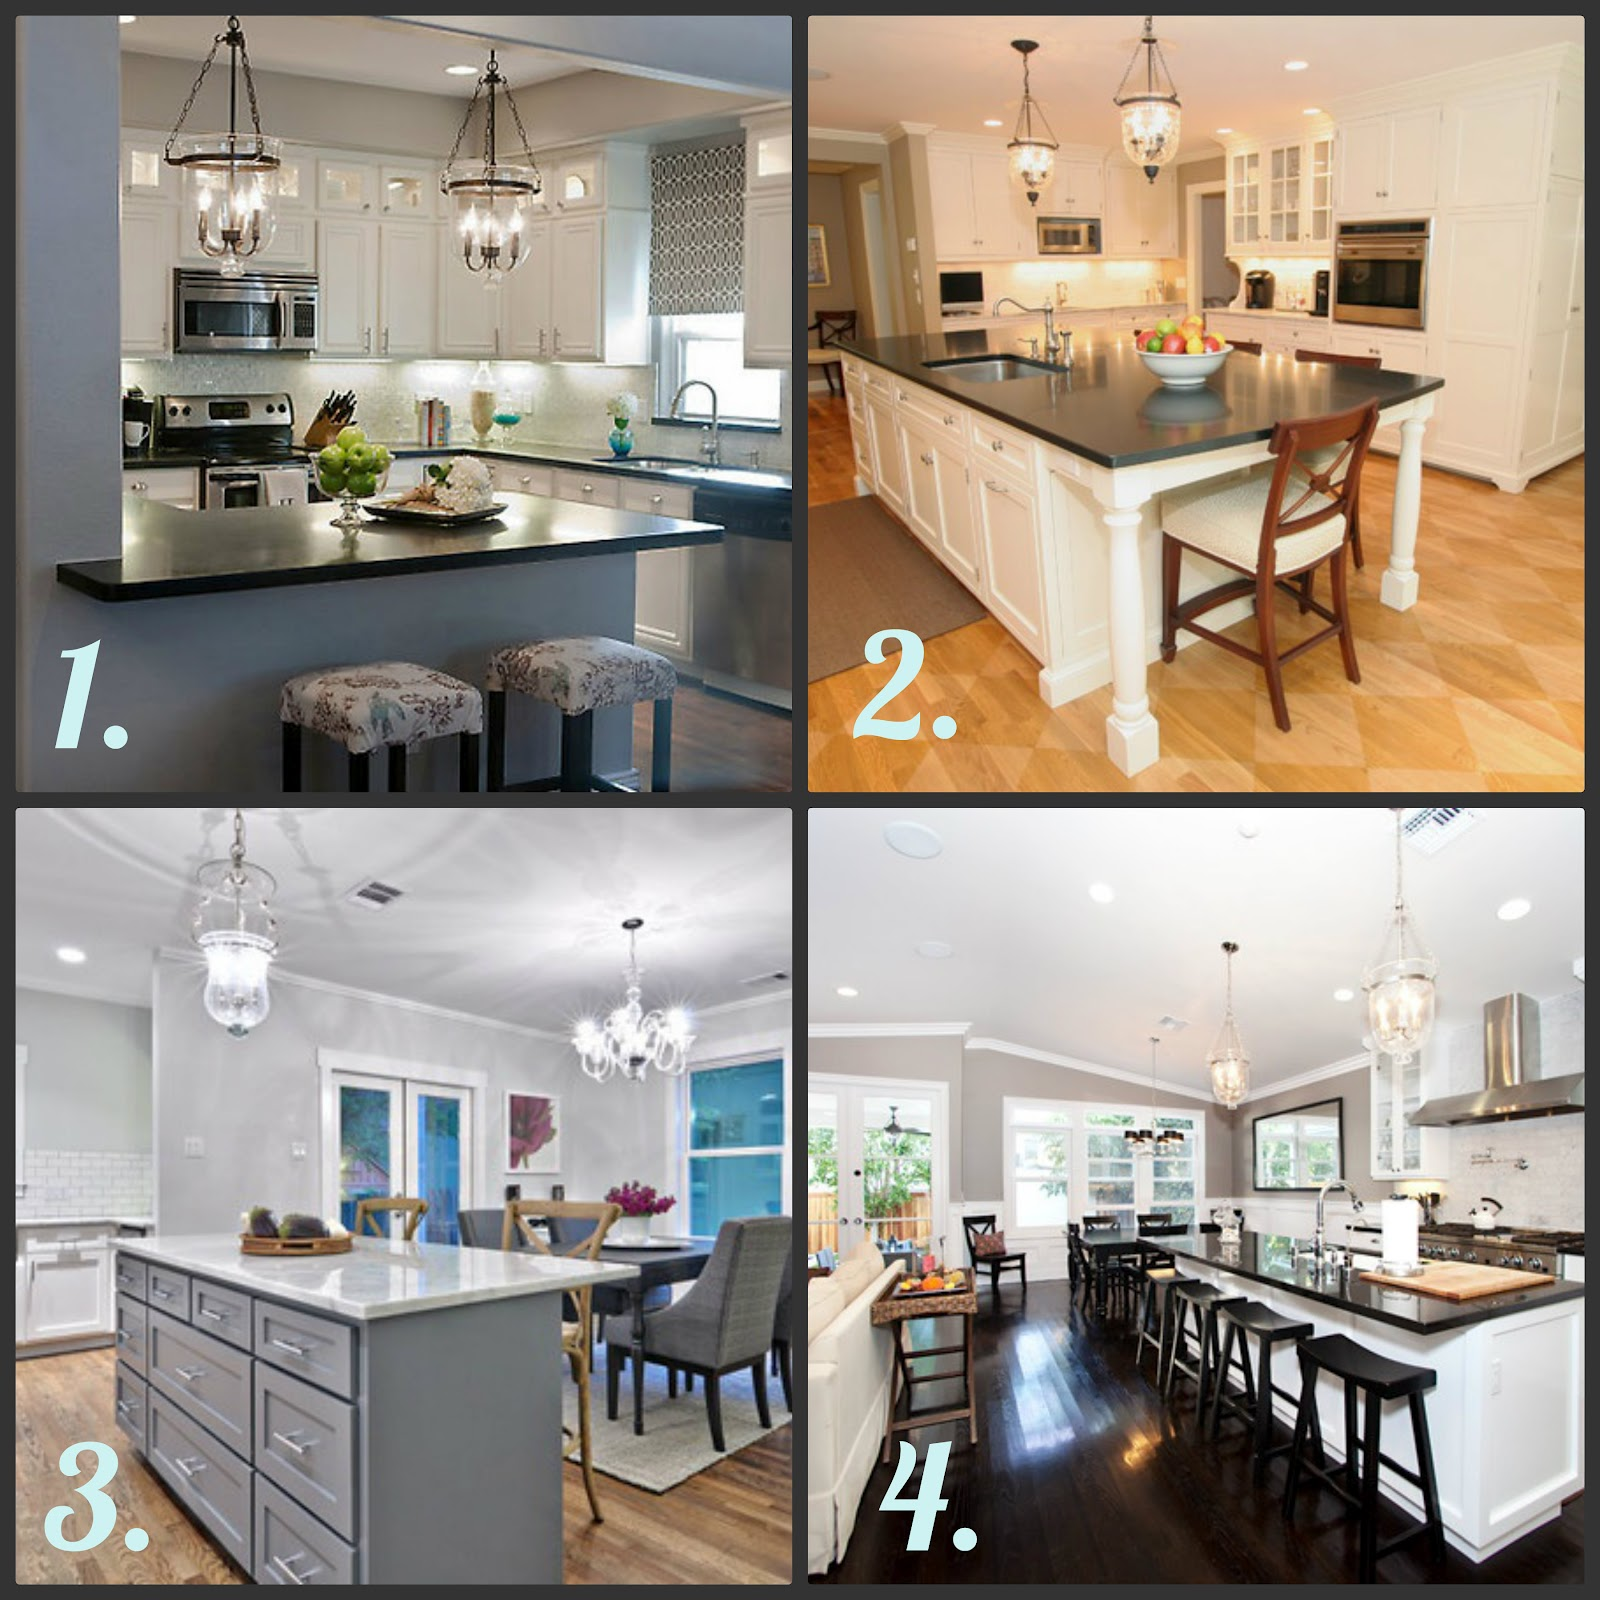 Pottery barn hundi lantern - Here Are Some Gorgeous Kitchens With The Hundi Style Lantern In Them I Am So Excited About My Awesome Find